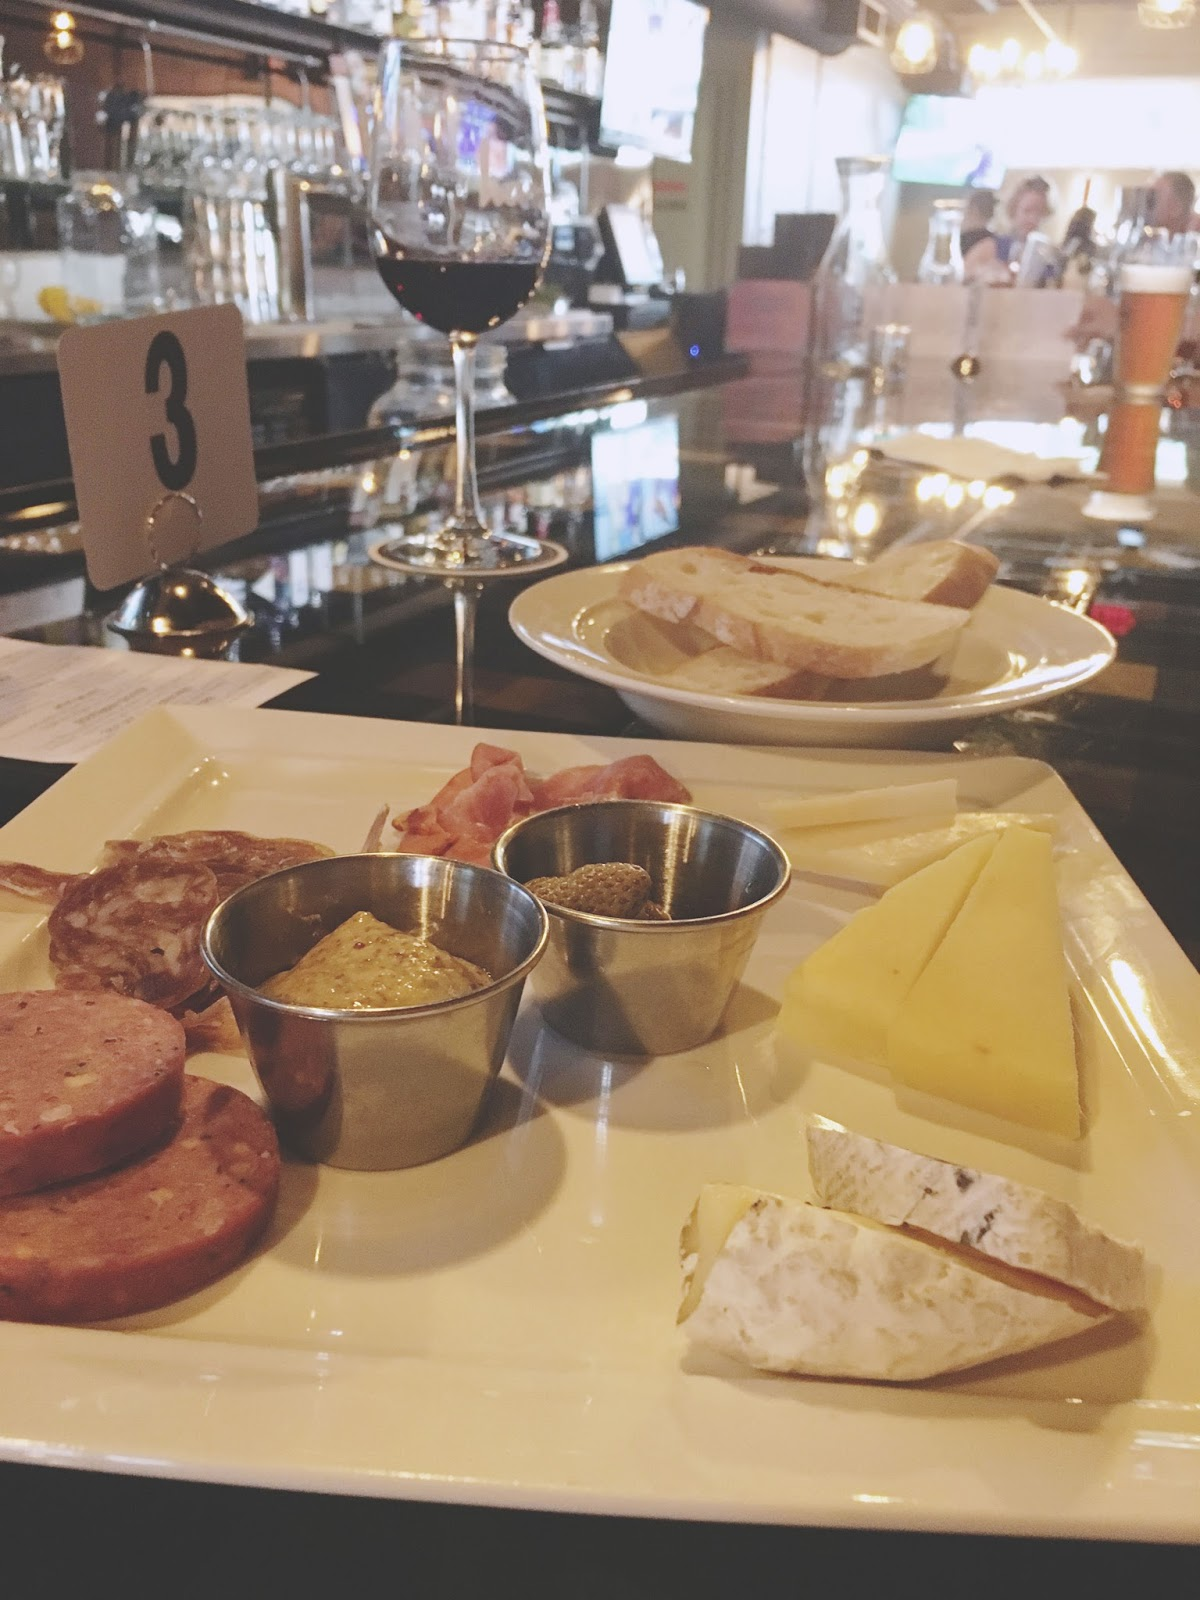 charcuterie and cheese at Harold's Tap Room - A bar/restaurant in Houston, Texas